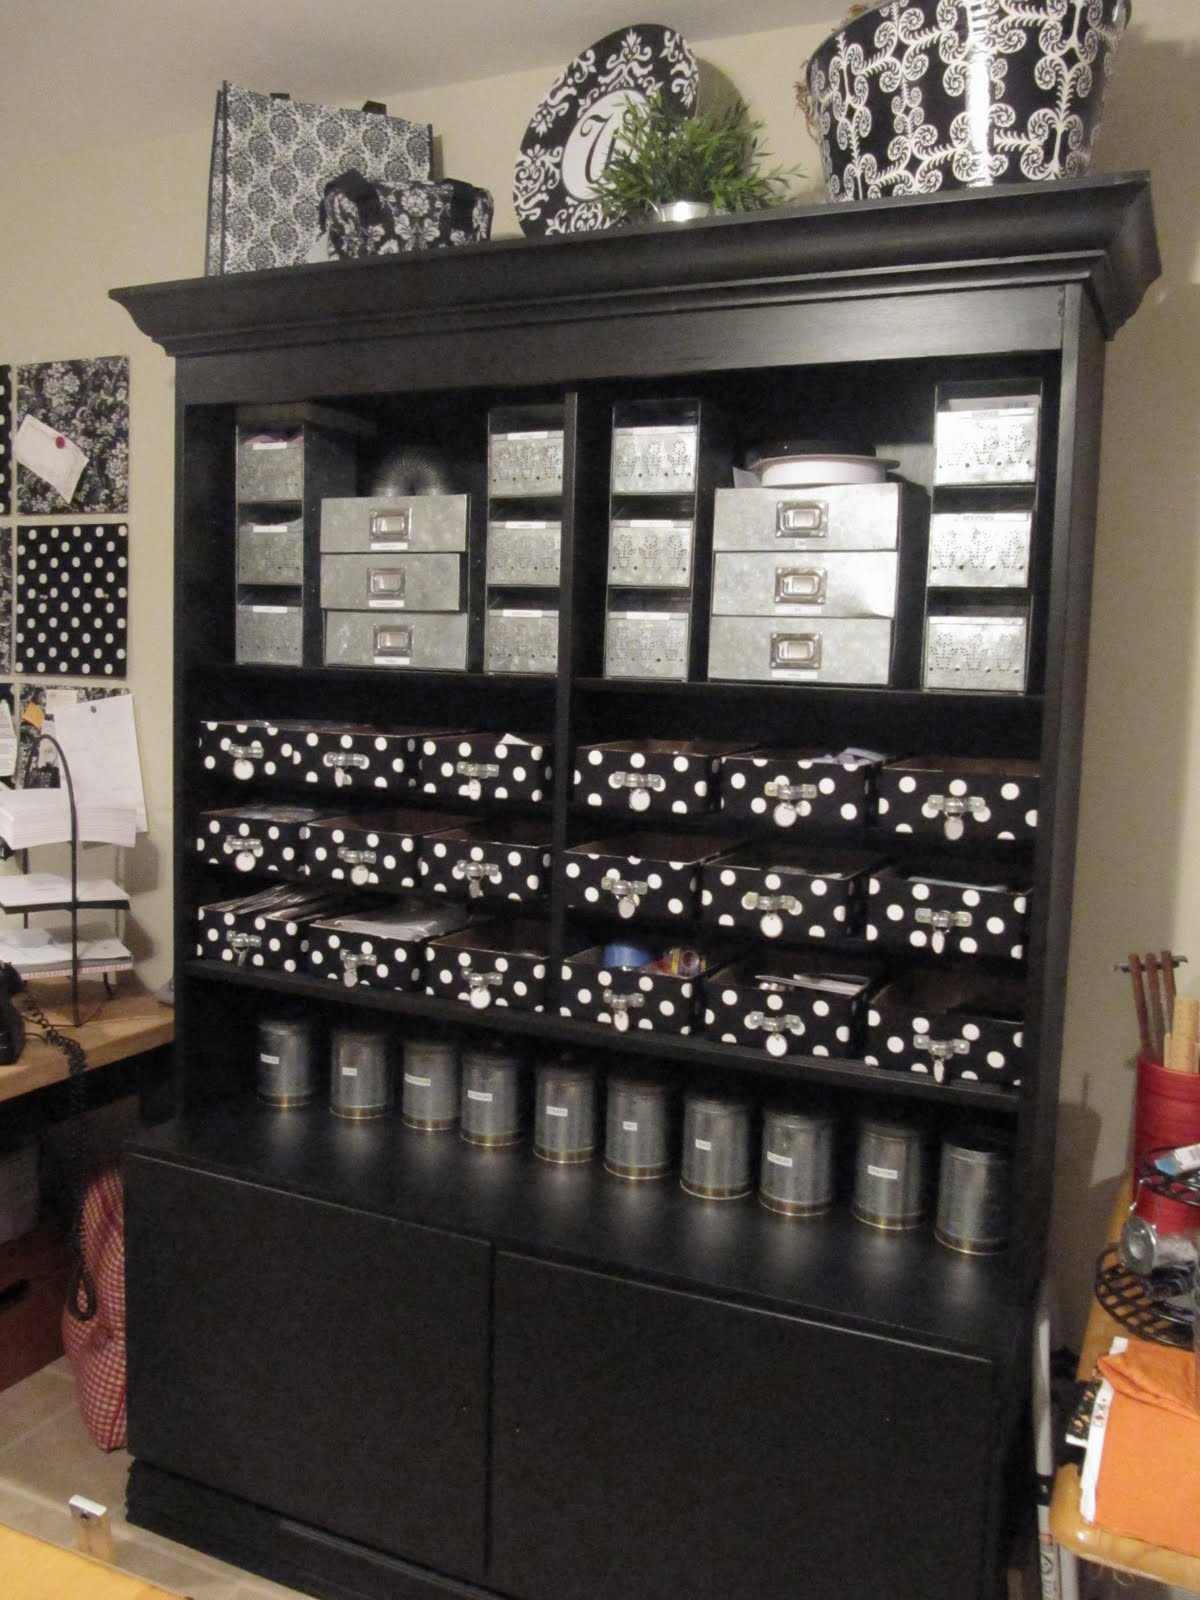 Sewing Room Storage Cabinets Sew Many Ways Organize Your Lifeone Spot At A Time